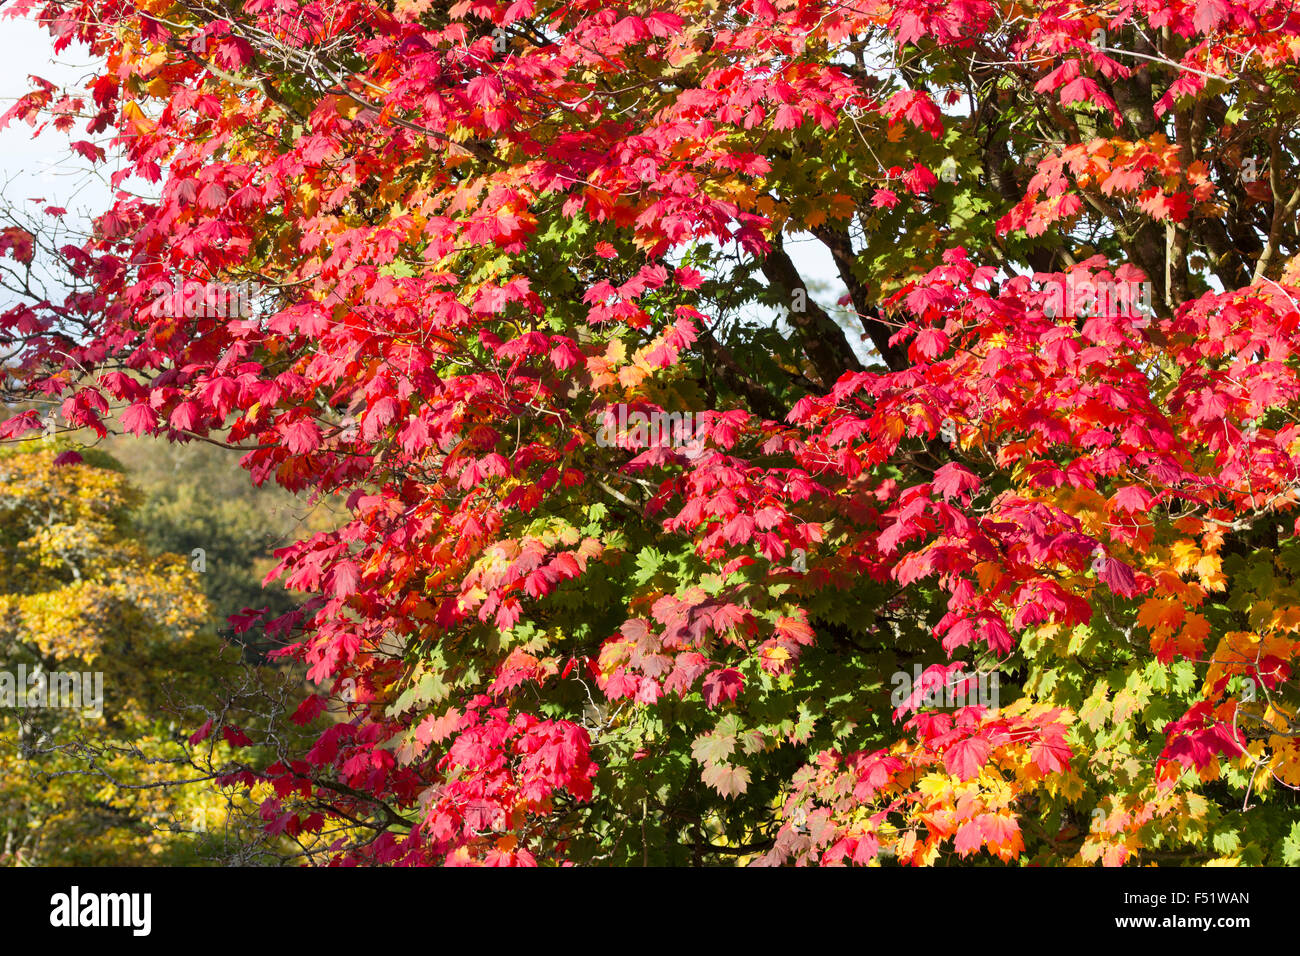 Red and gold autumn foliage of the hardy Japanese maple, Acer japonicum - Stock Image